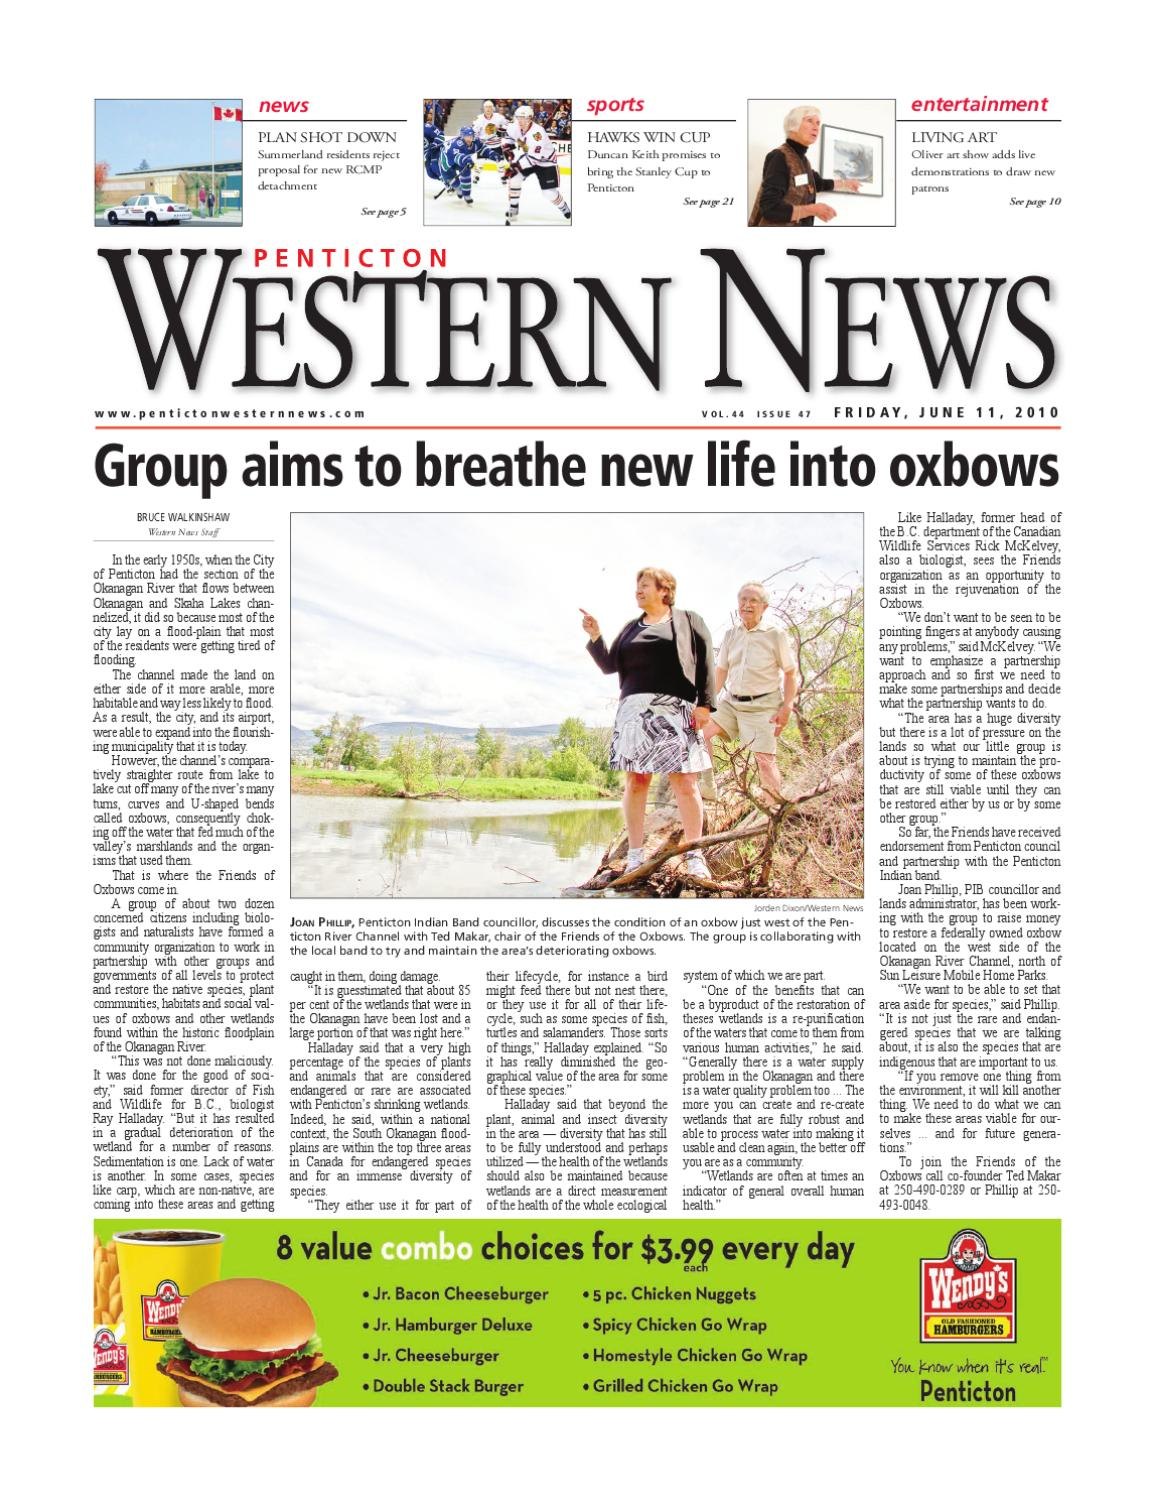 Penticton Western News By Issuu Lamp Wiring Supplies Promotiononline Shopping For Promotional